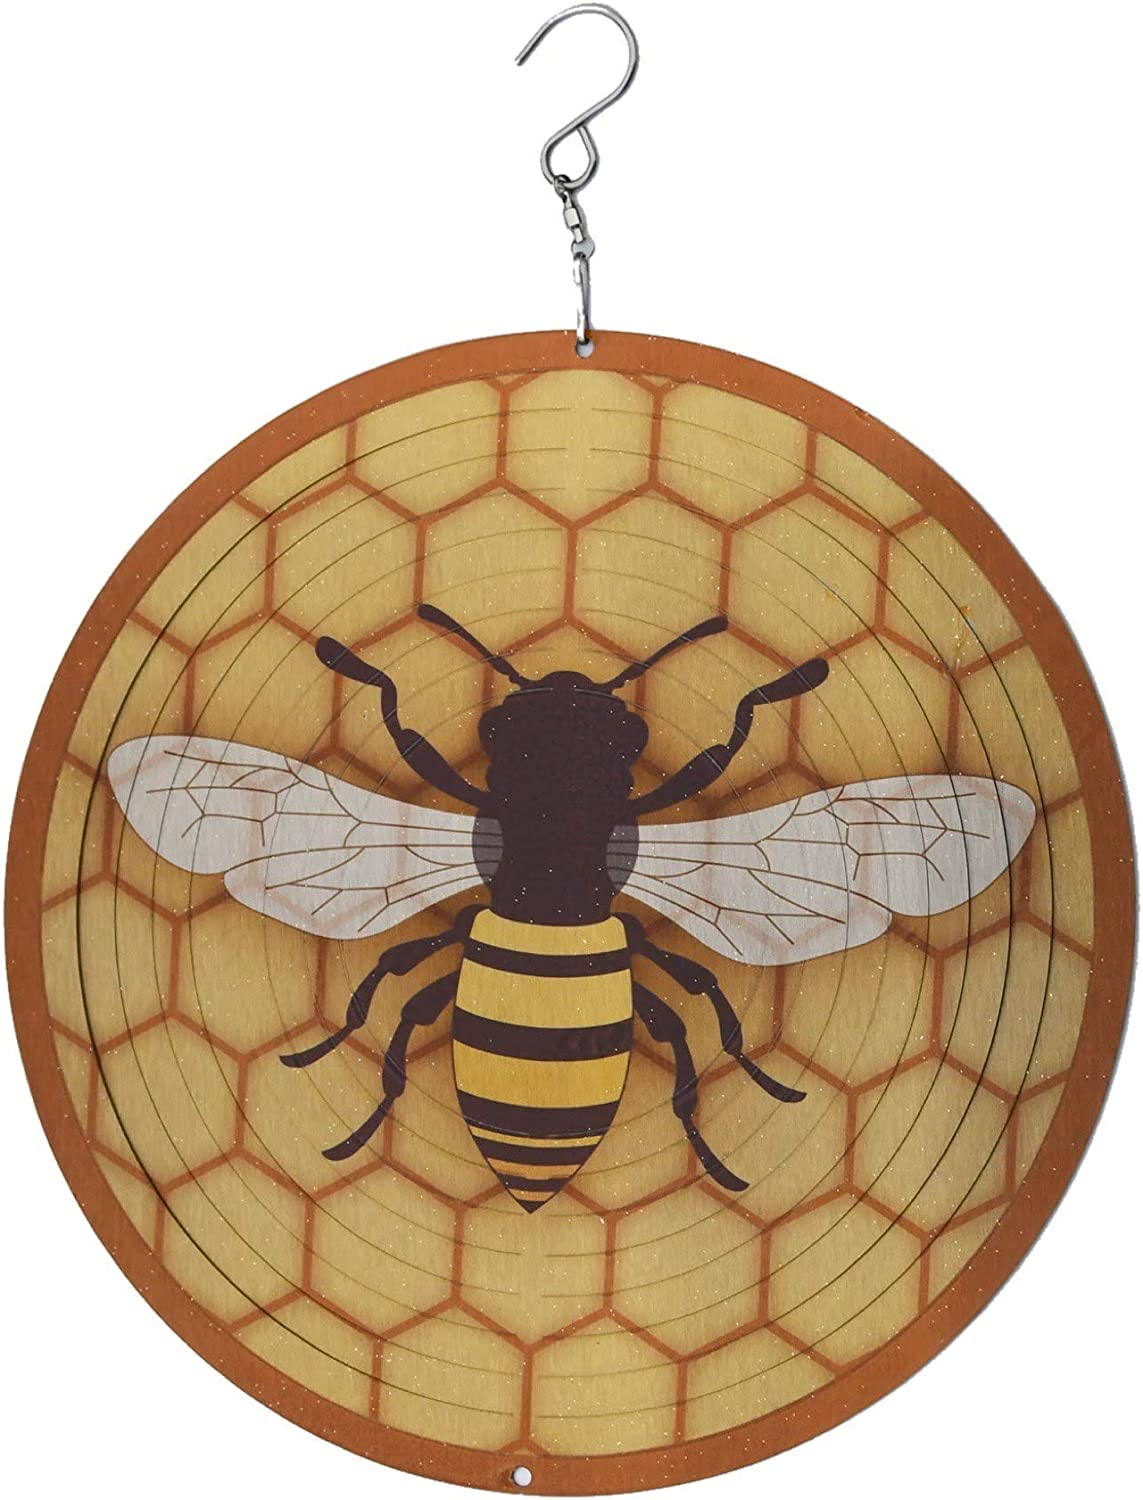 Wind Mobile Metal Spinner, Outdoor Art, Bee Wind Spinner, Laser Cut Metal Art. Durable Stainless-Steel Honeycomb + Bee. All Weather Hanging Wind Spinner for Garden, Yard, Porch, Home or Apartment.